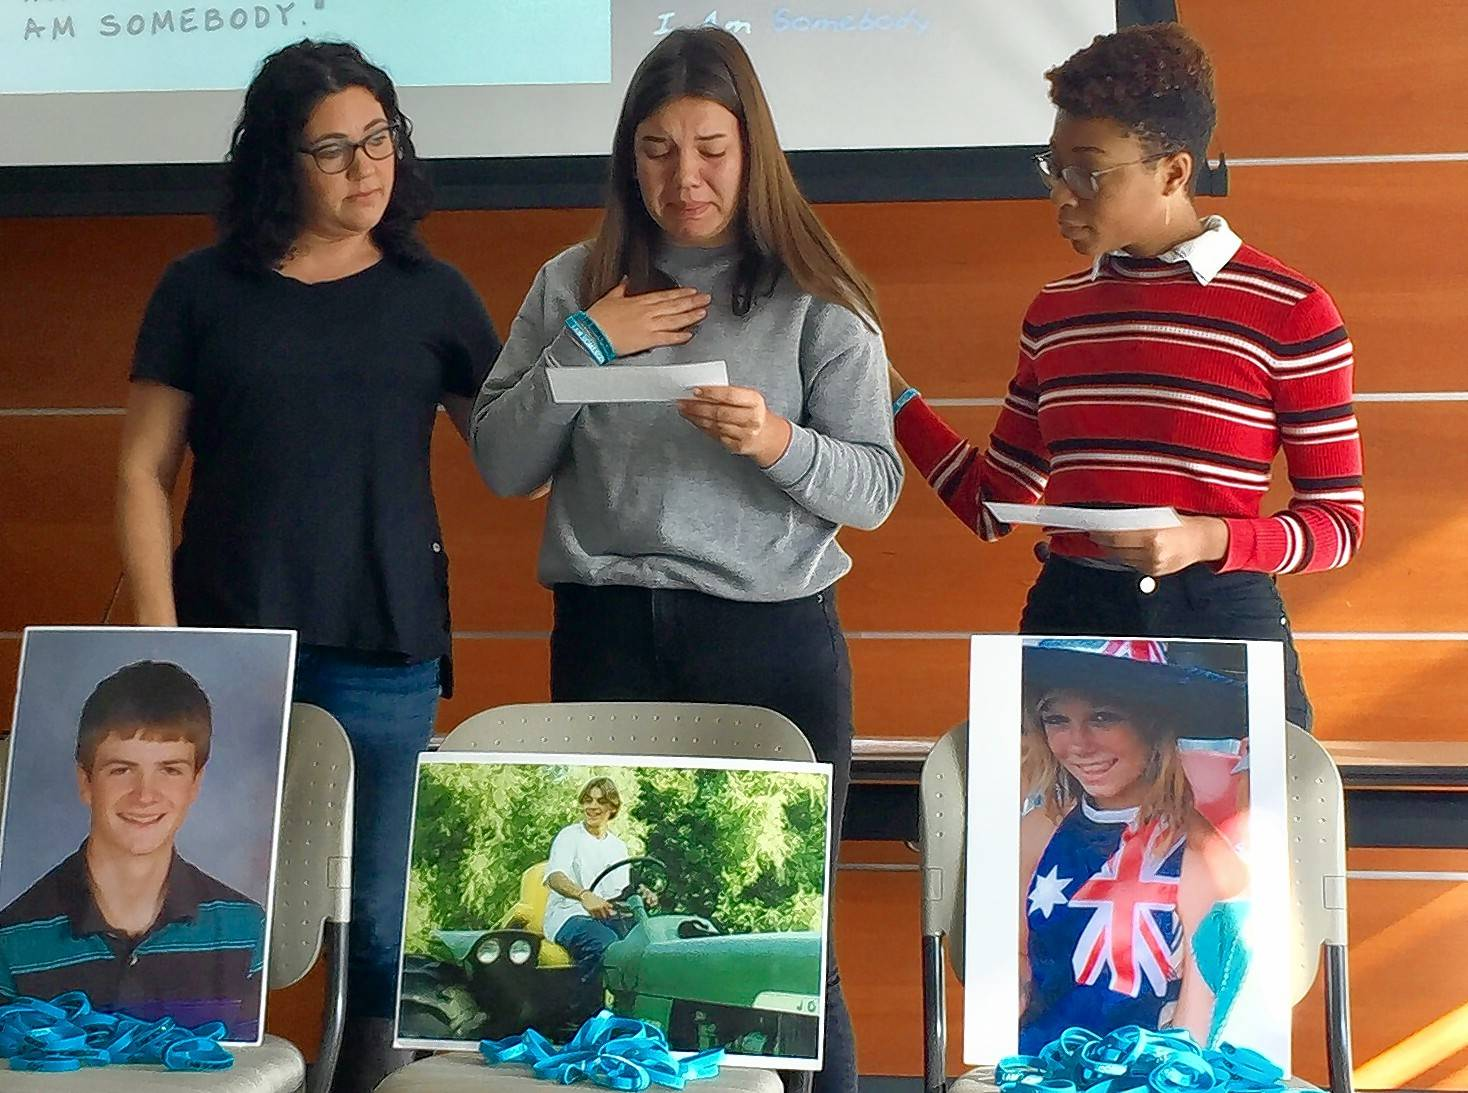 Jenn Djordjevic, left, Jaidyn Karskens, center, and Kailah Peters read the stories of children who were victims of bullying and who died by suicide at a presentation Saturday in Hoffman Estates.